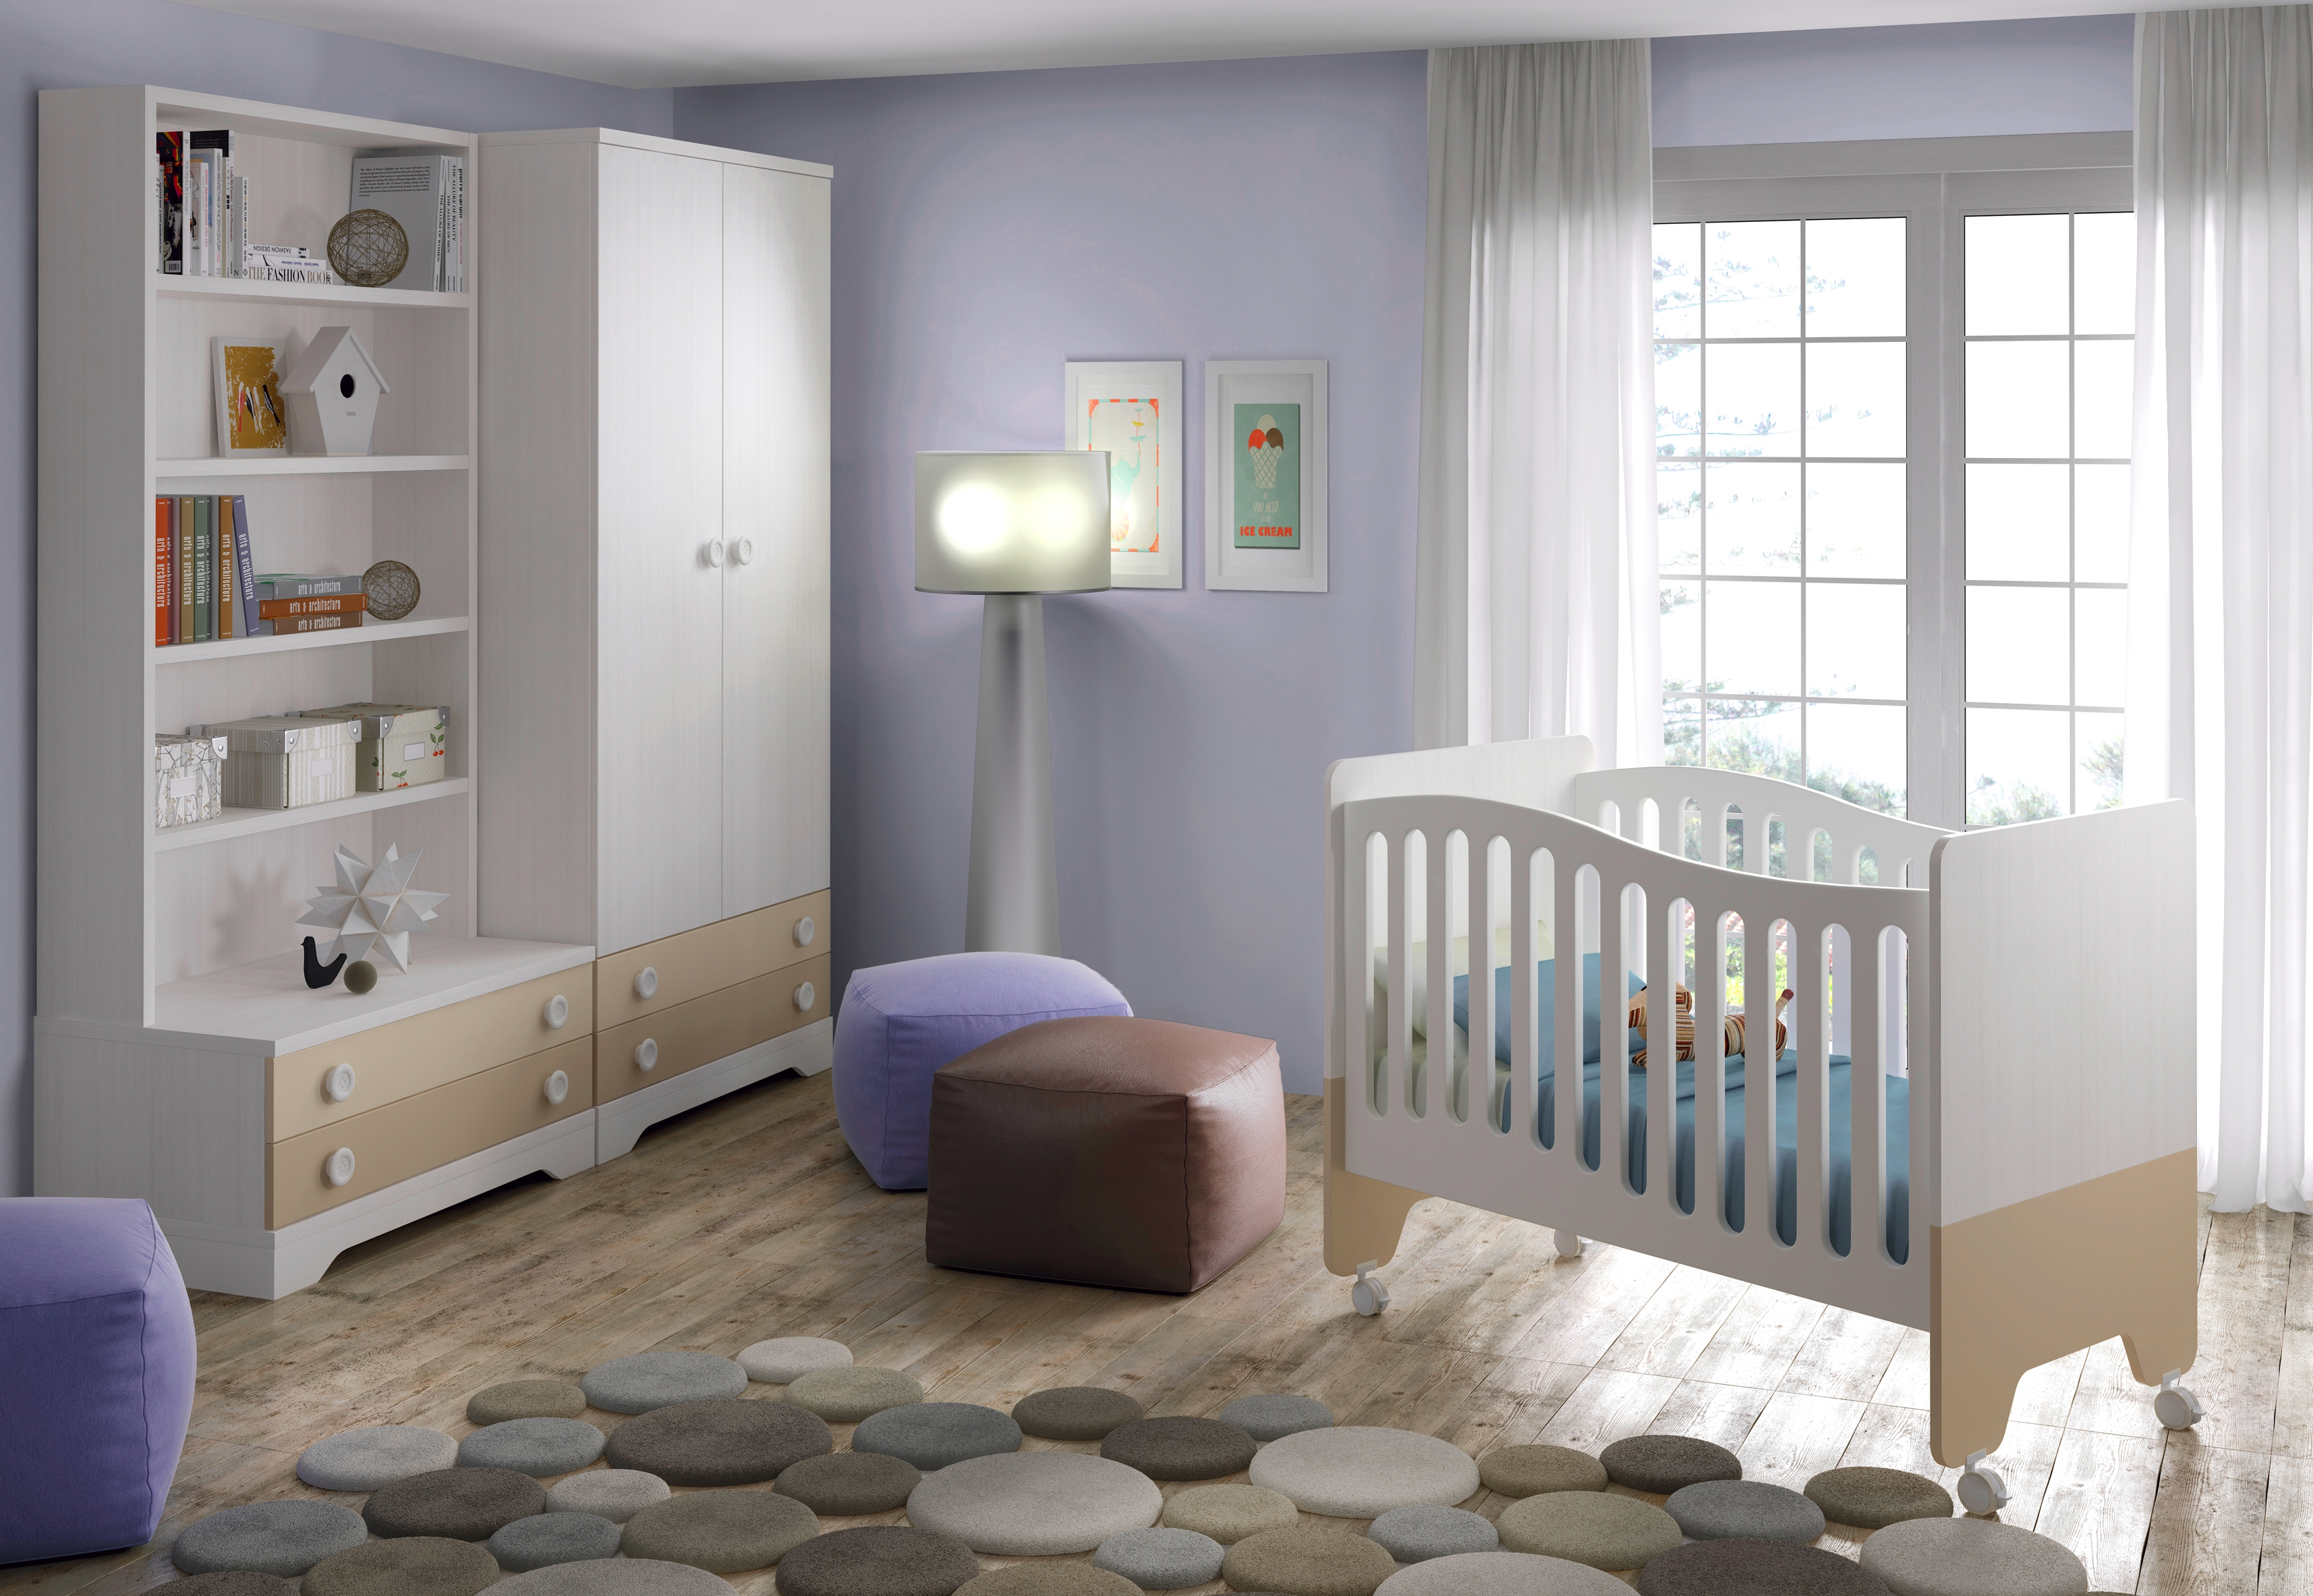 Chambre b b design bicouleur fun et color e glicerio for Chambre bebe denver